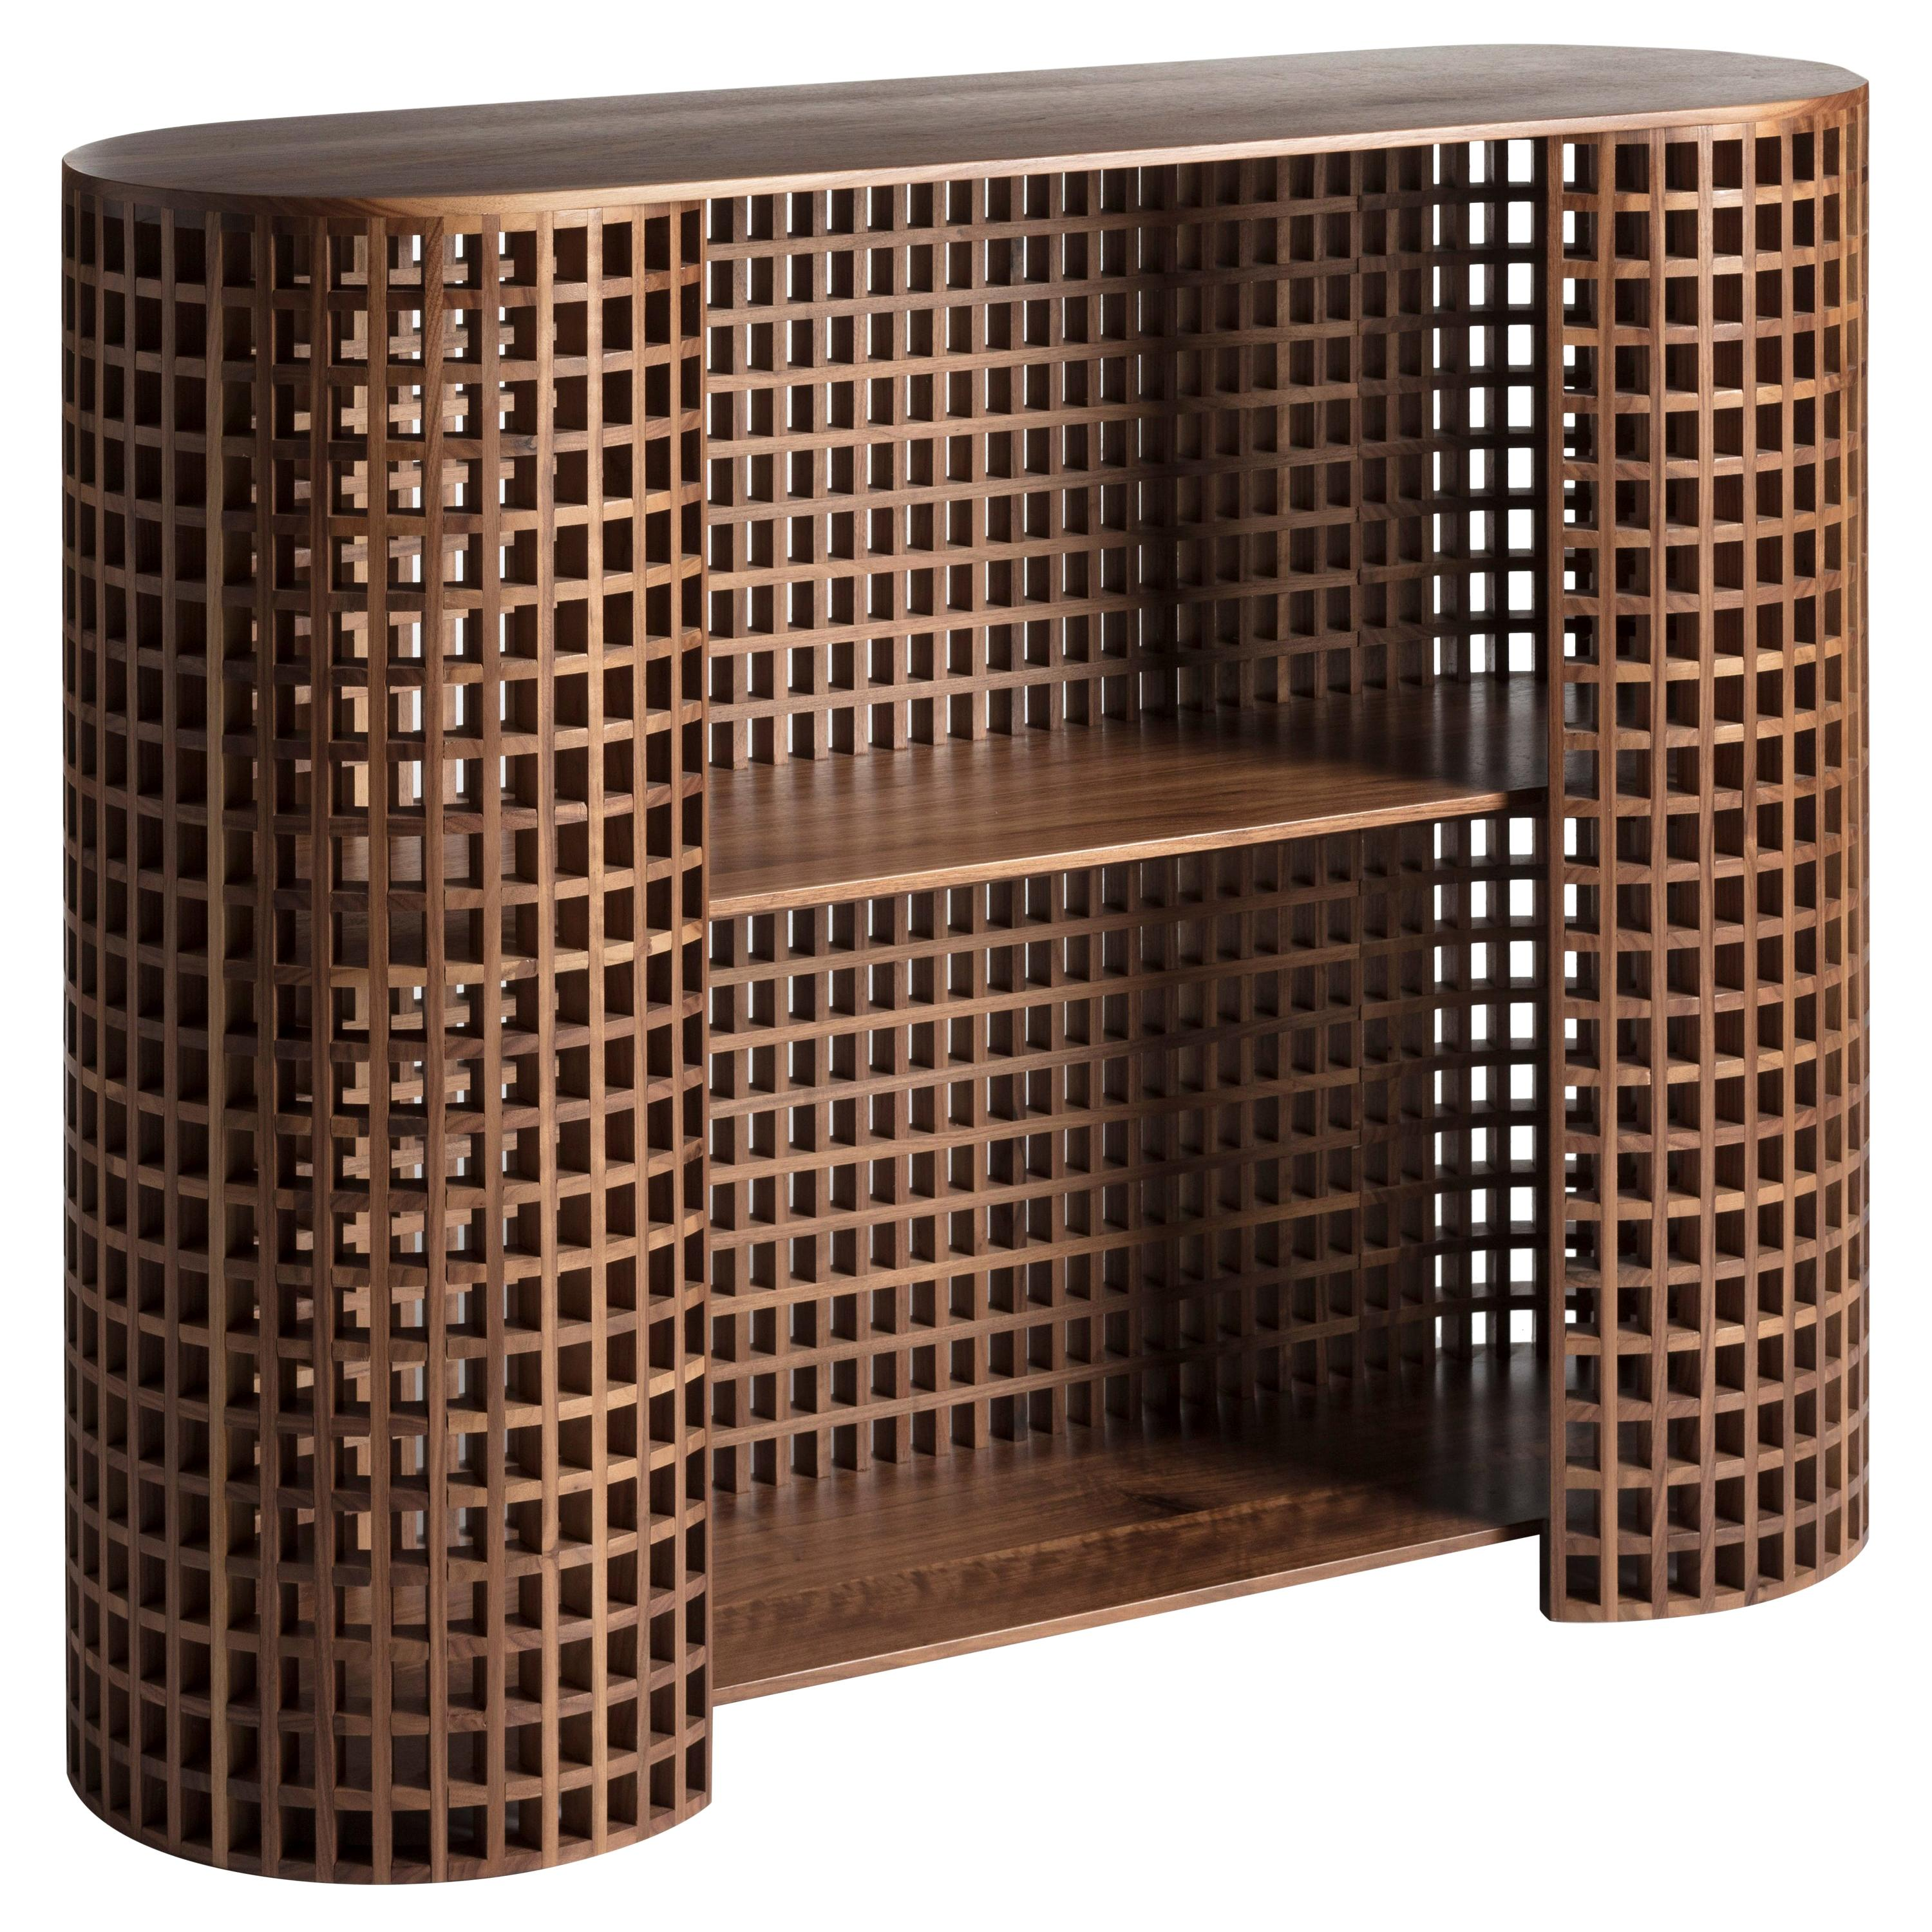 Contemporary and crafted cabinet, sideboards, living room furniture in walnut